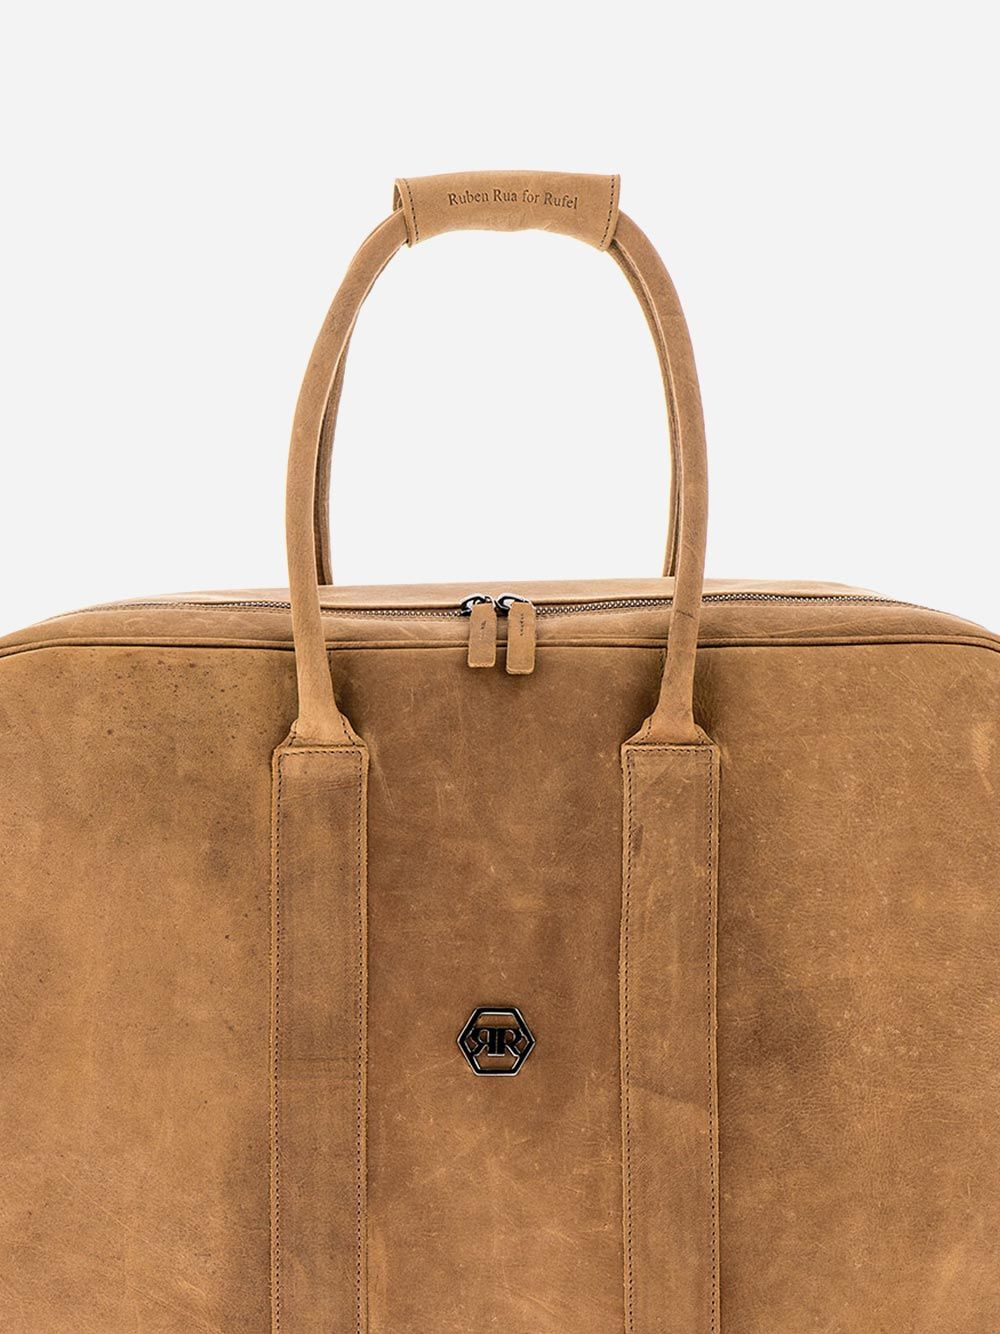 Rustic Camel Weekend Bag | Rufel